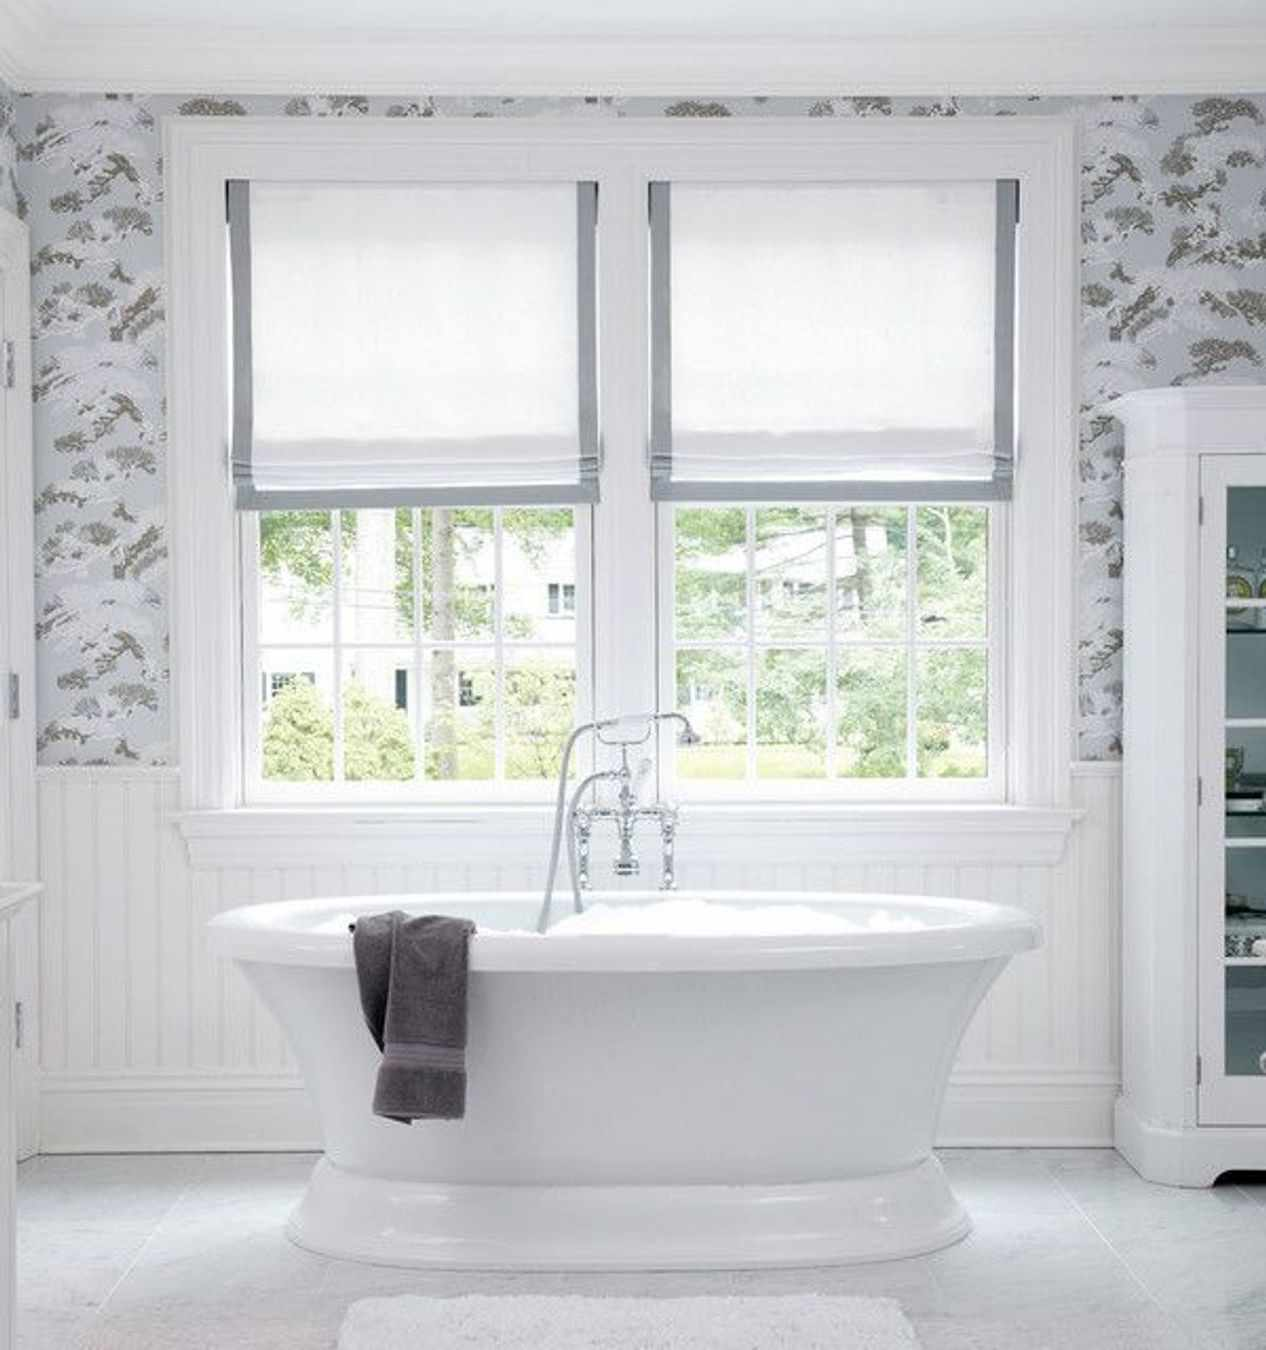 grey-bathroom-curtains-nice-white-and-grey-roman-shades-for-bathrooms-windows-treatment-image